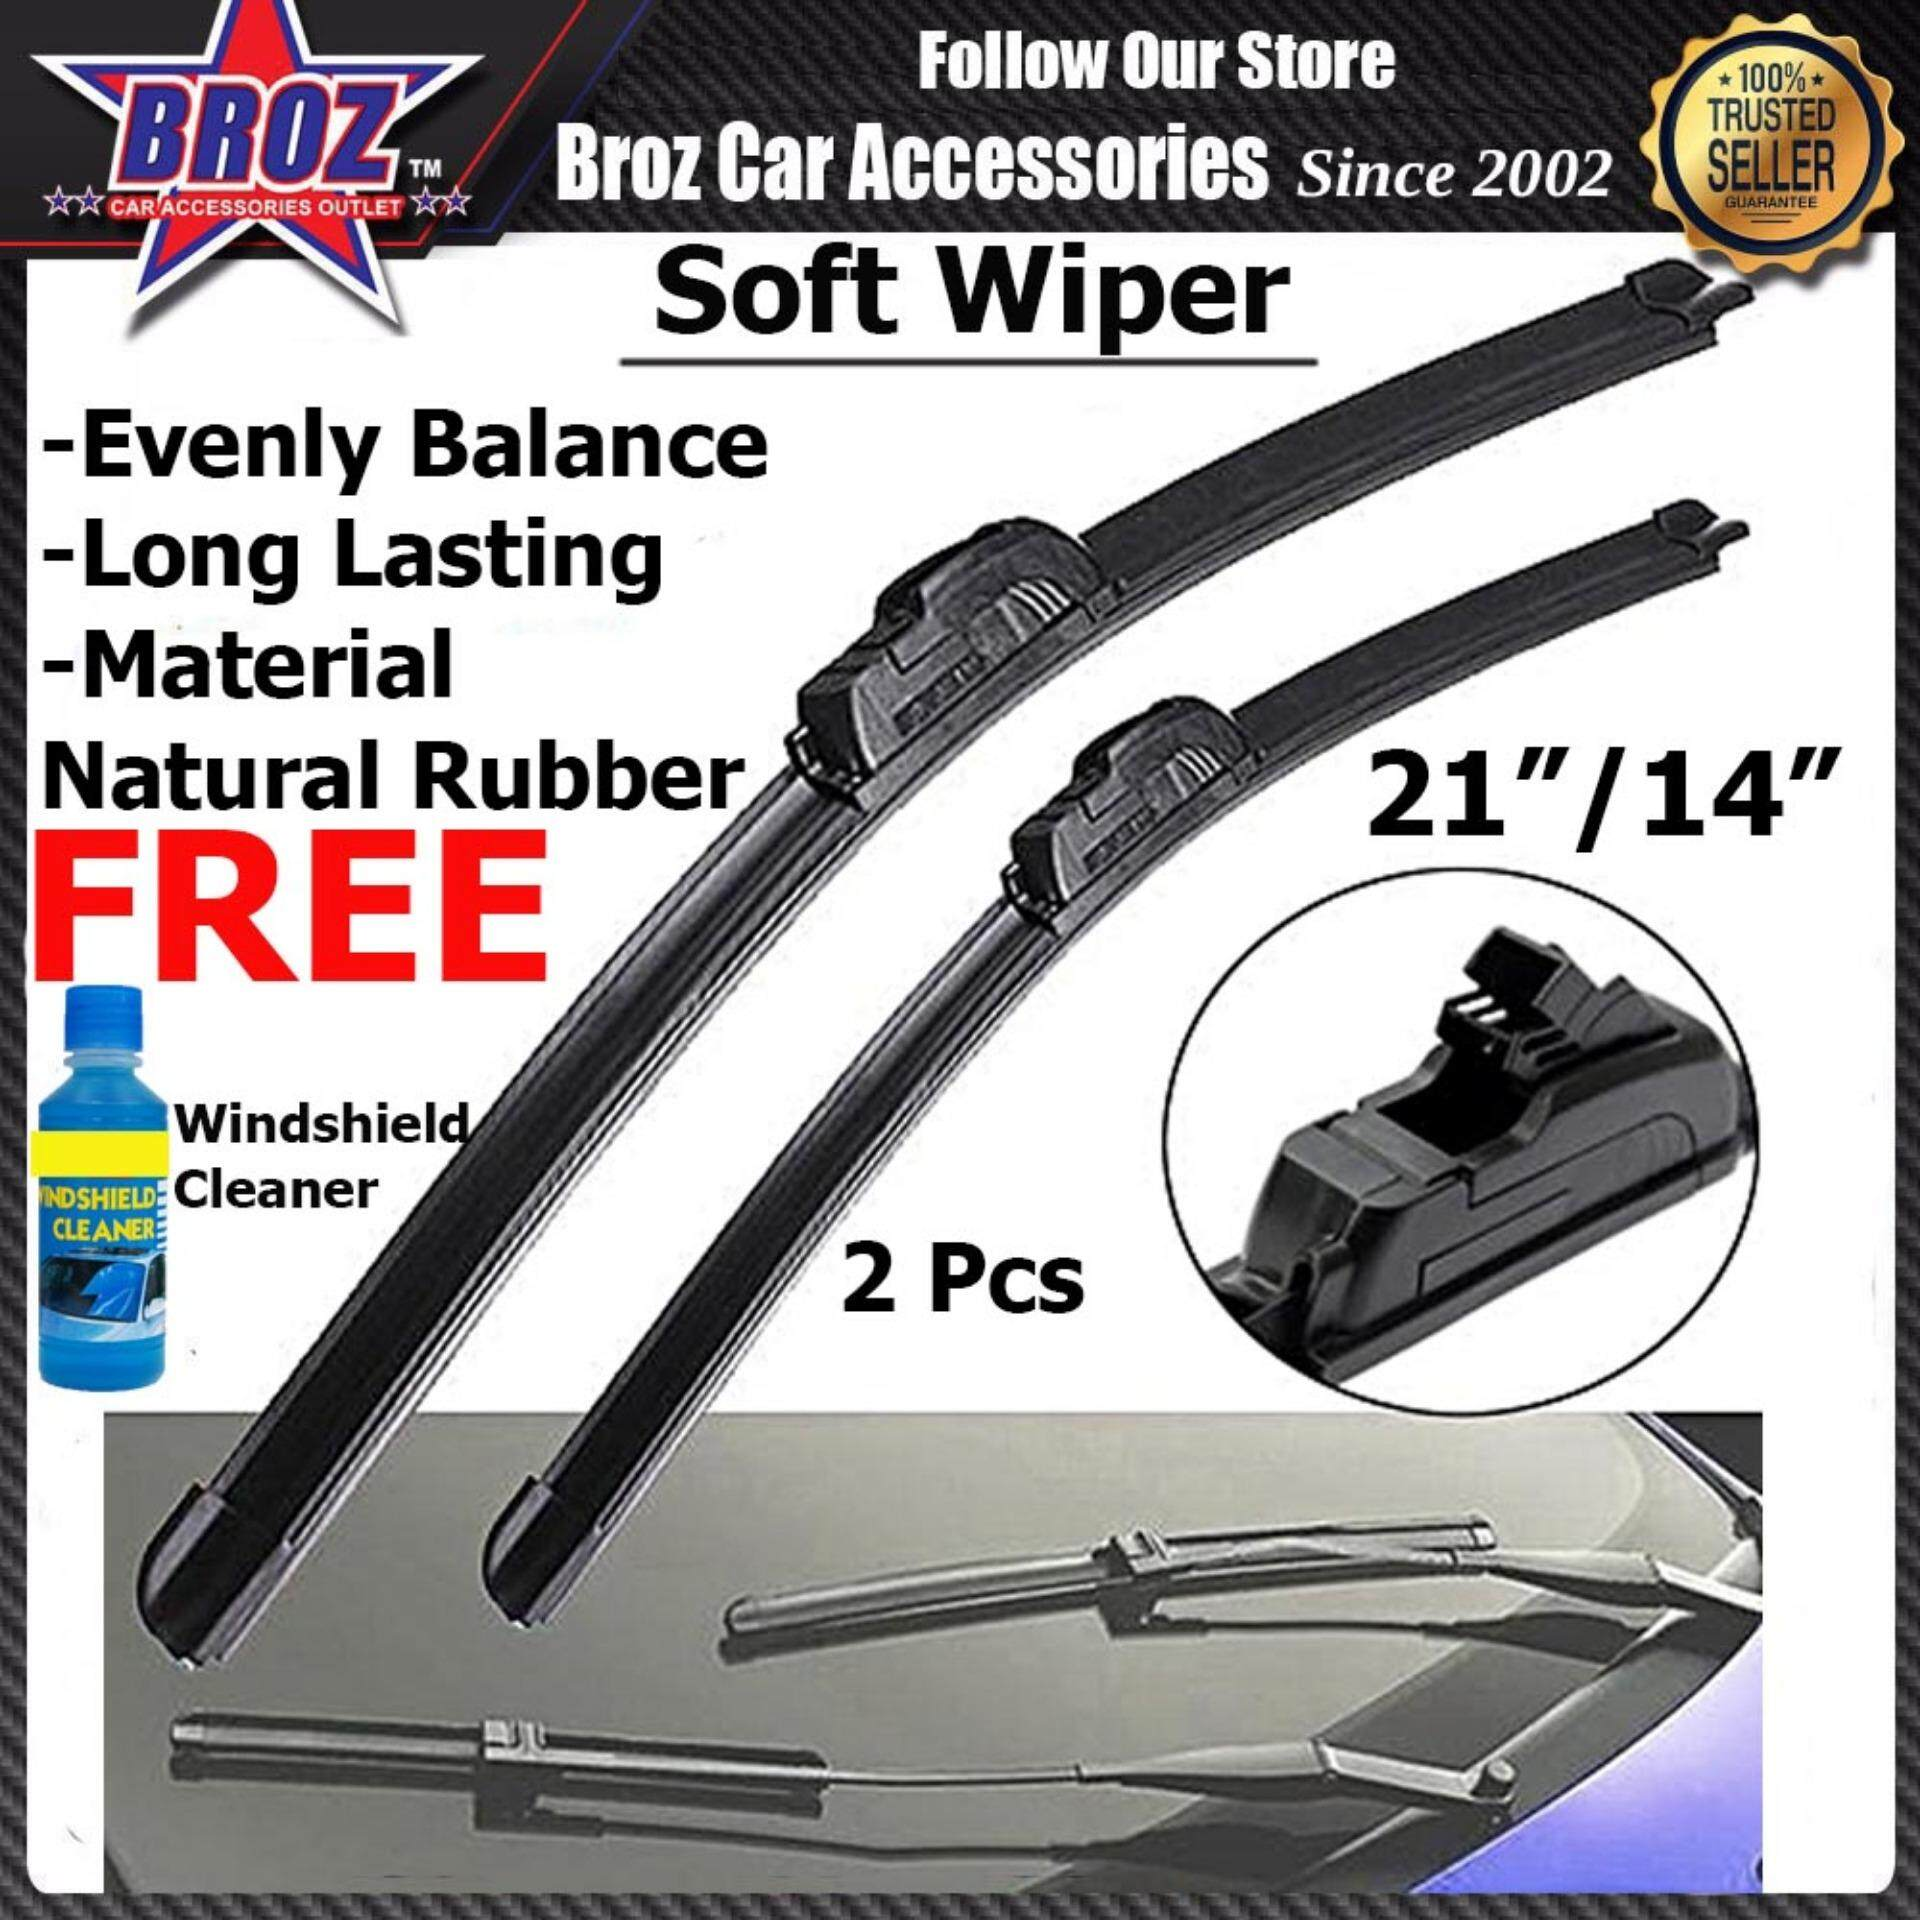 "Axia Bezza Almera Car Natural Rubber Soft Wiper 21""/14"" (2pcs)"